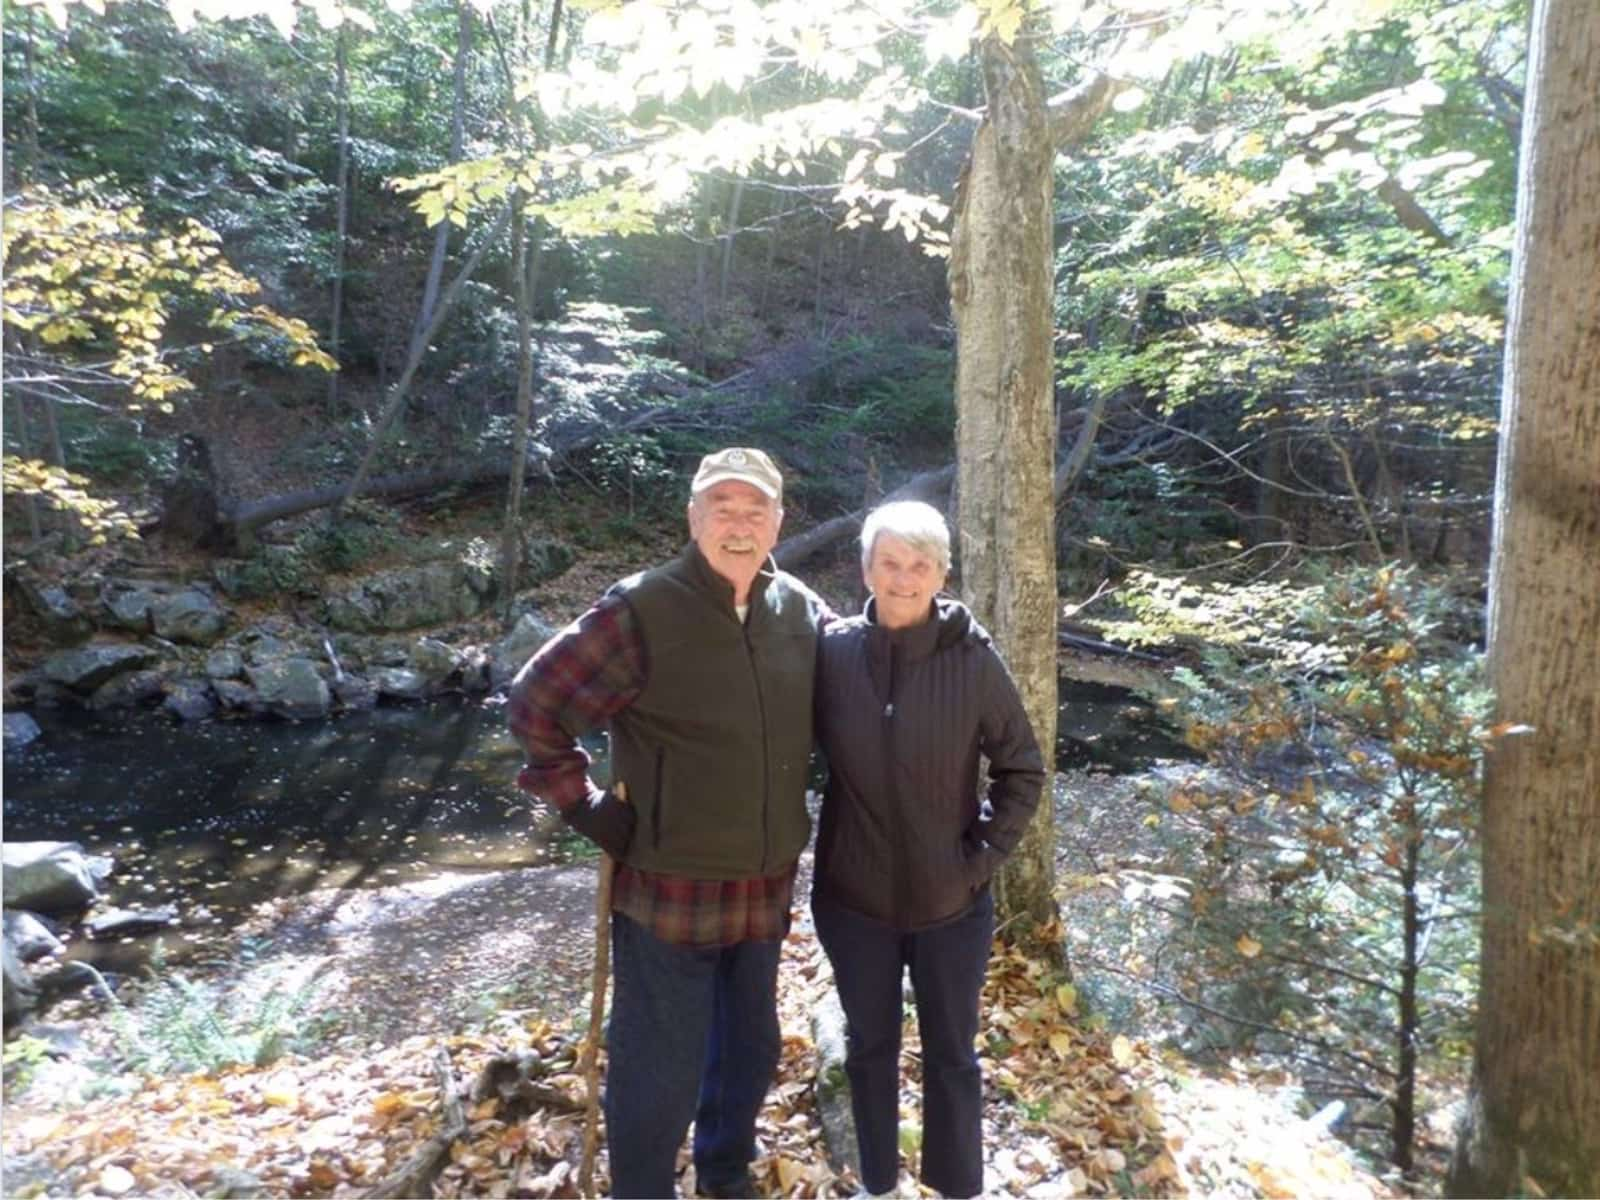 Joan & George from Waterville, Maine, United States